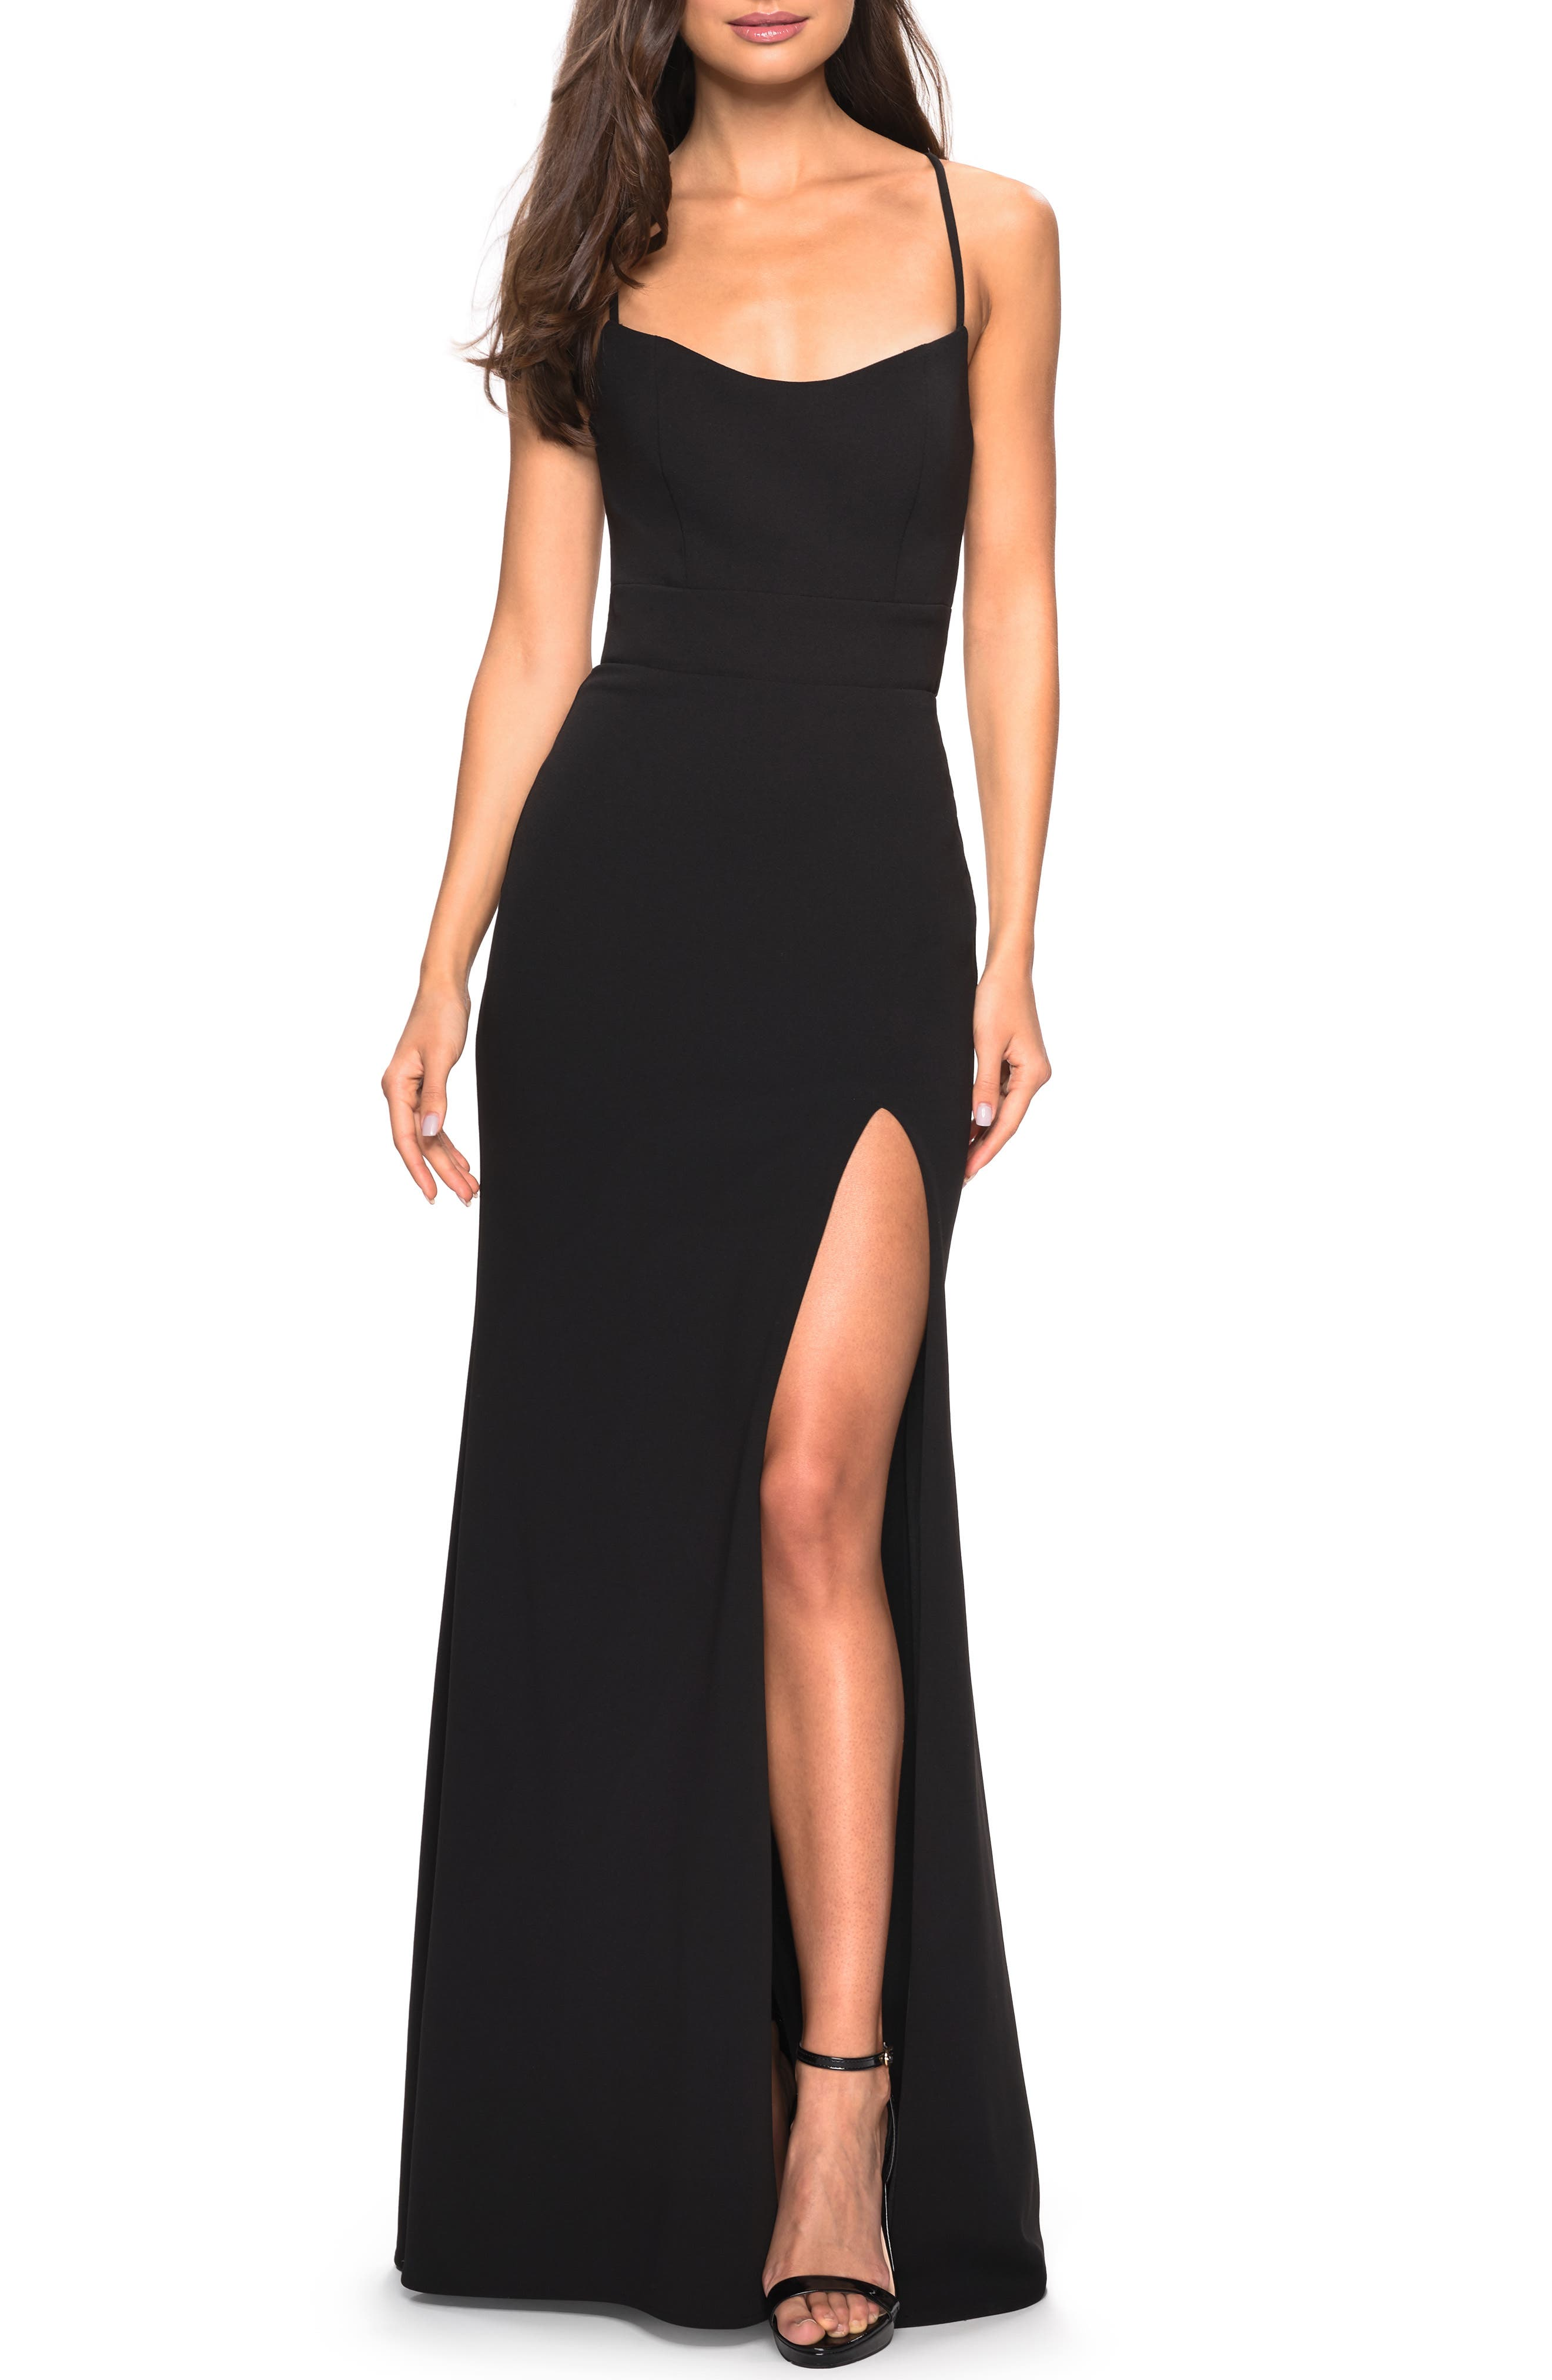 La Femme Sweetheart Neck Jersey Evening Dress, Black